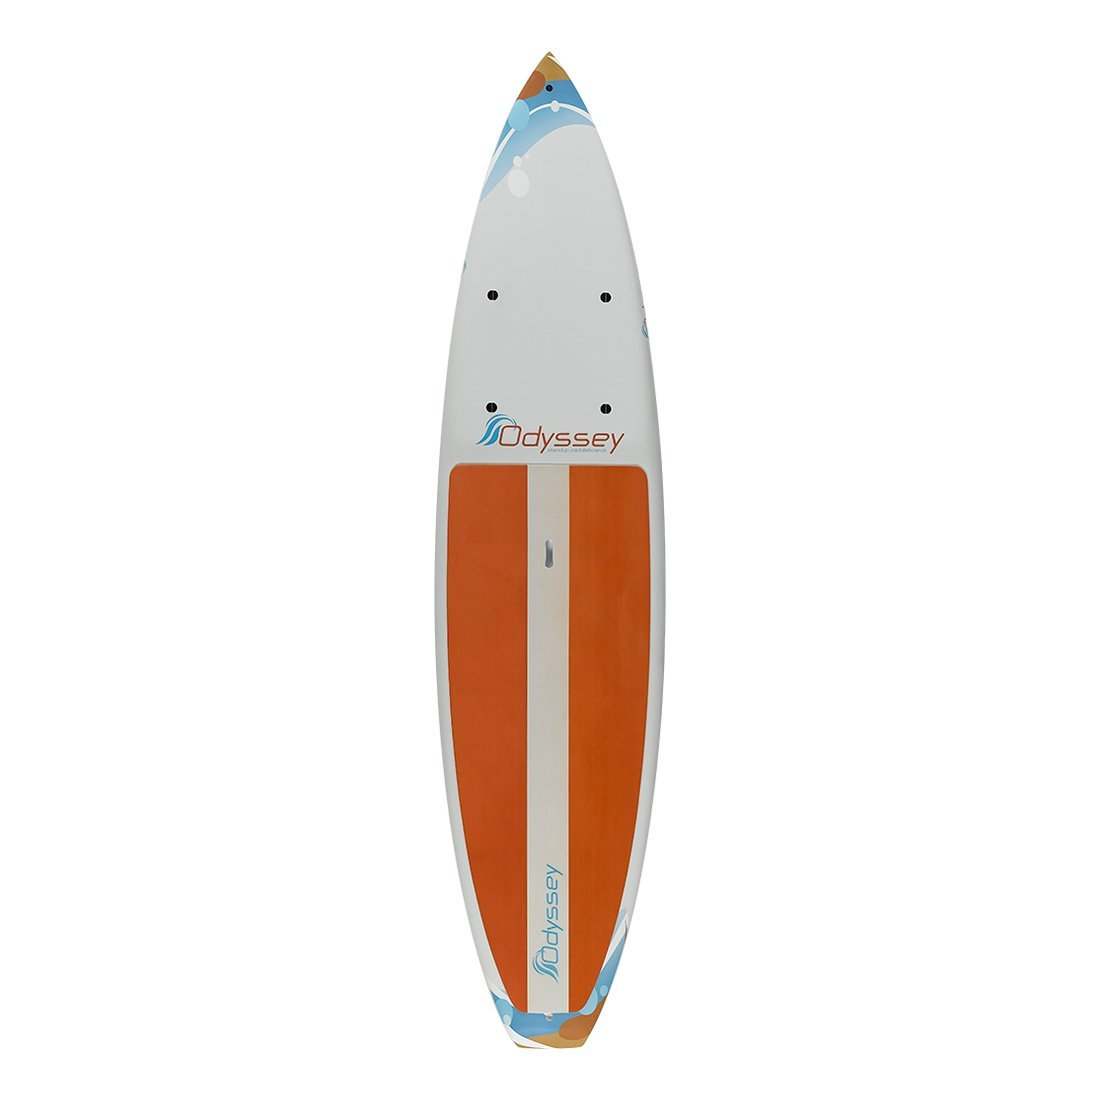 Odyssey SUP Tour Package - Orange Paddle Boards 4theoutdoors America US USA SUP outdoors